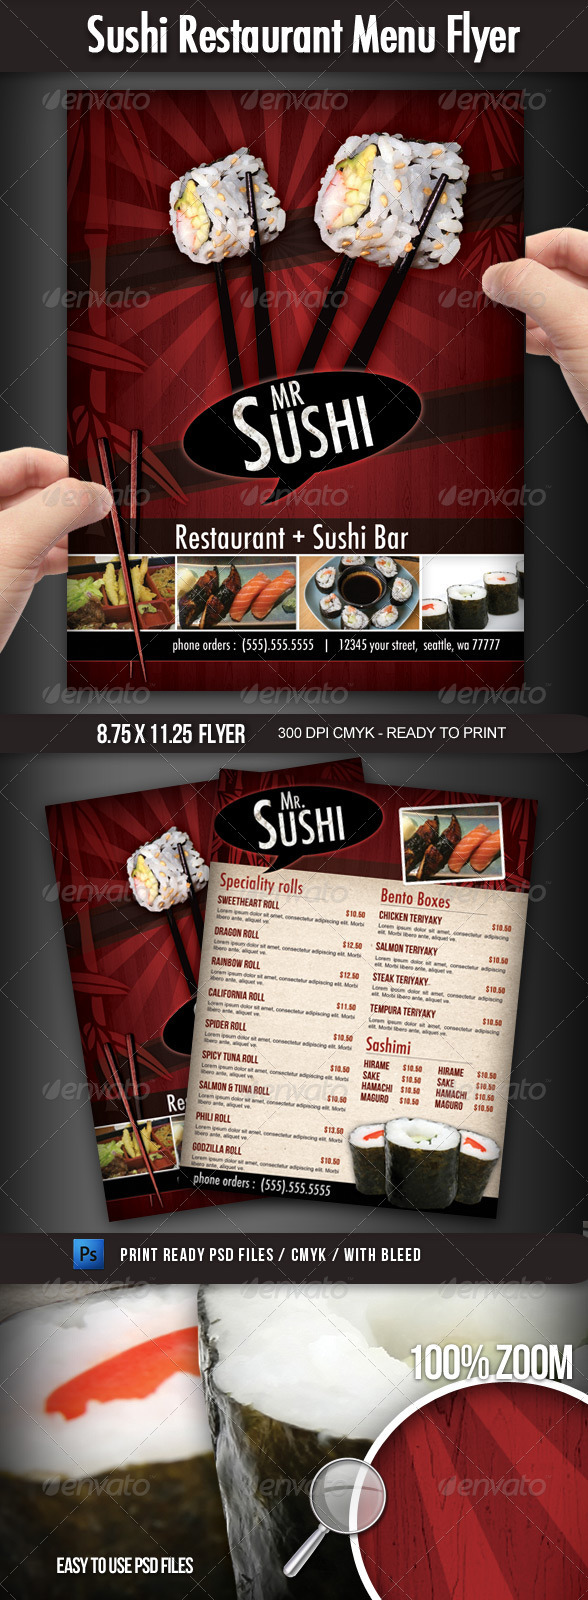 Sushi Restaurant Menu Flyer - Flyers Print Templates